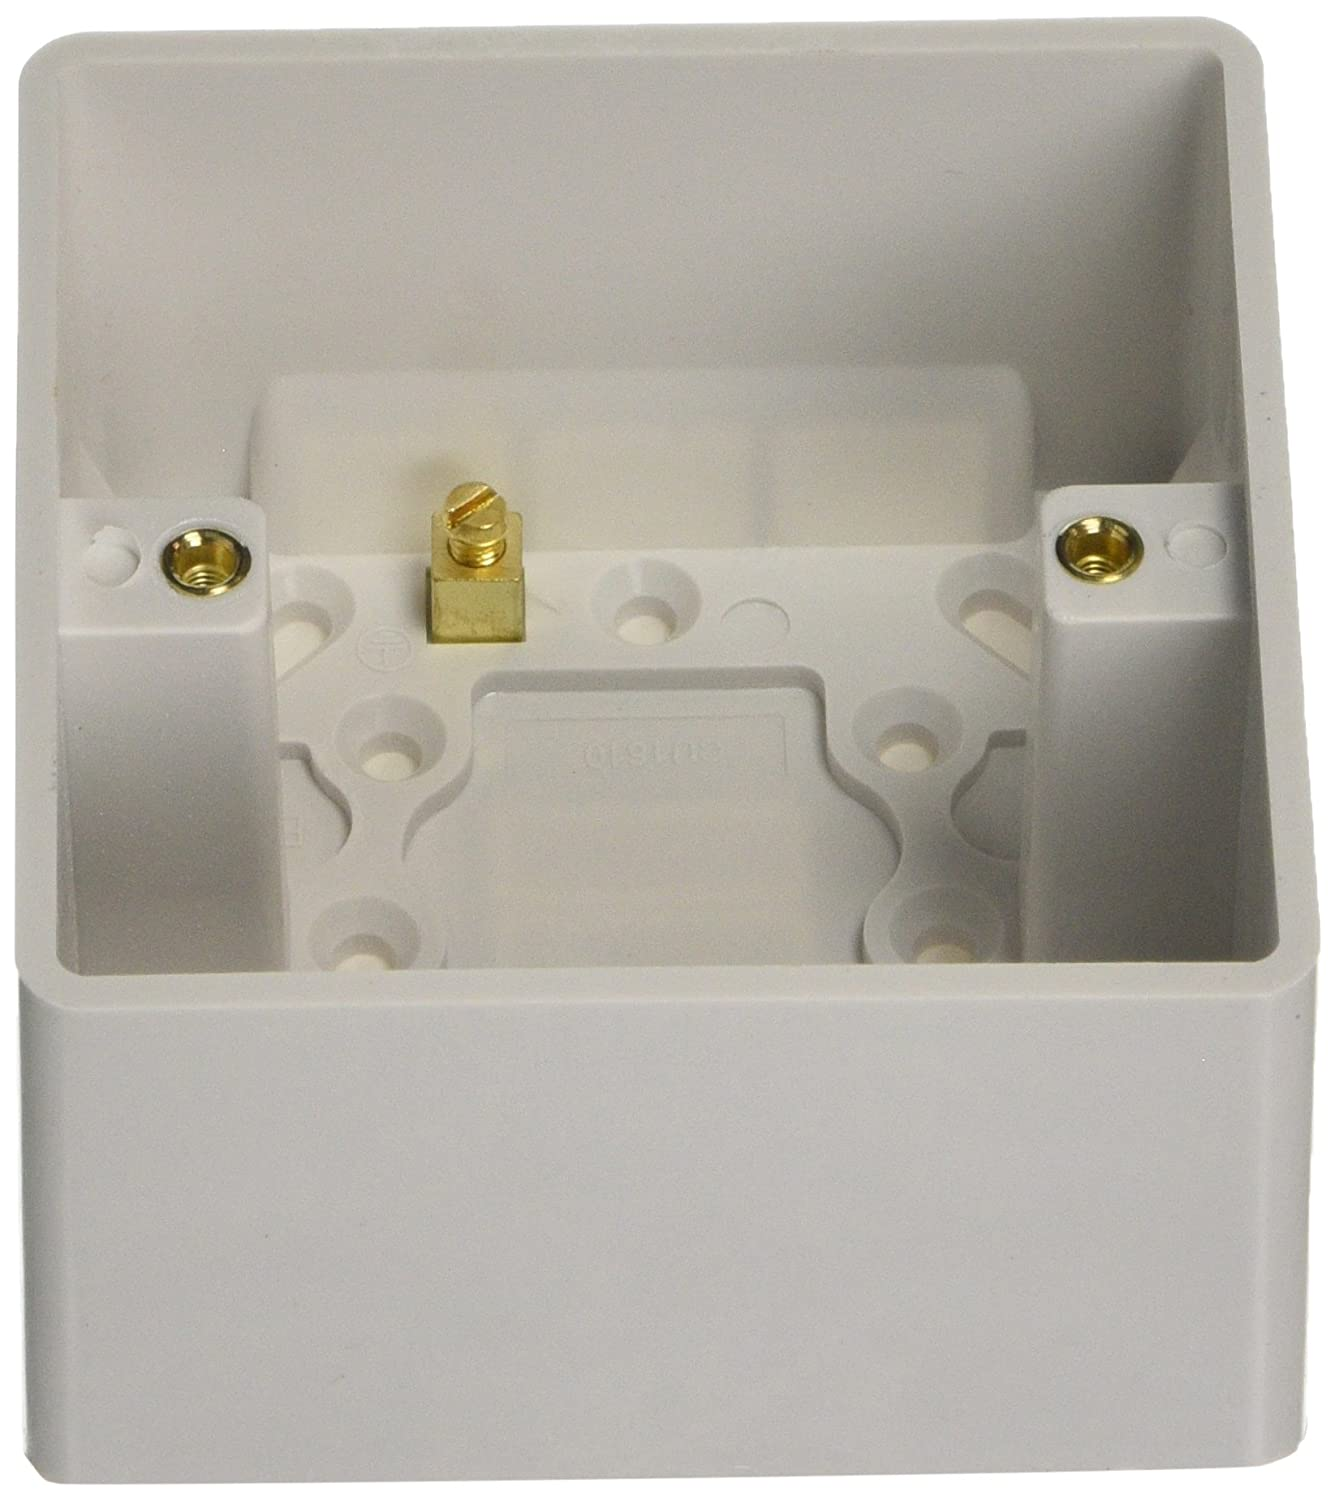 Knightsbridge CU1610 Curved Edge Single Pattress Box with Earth Terminal and Cable Strain Relief, White, 47 mm MLA